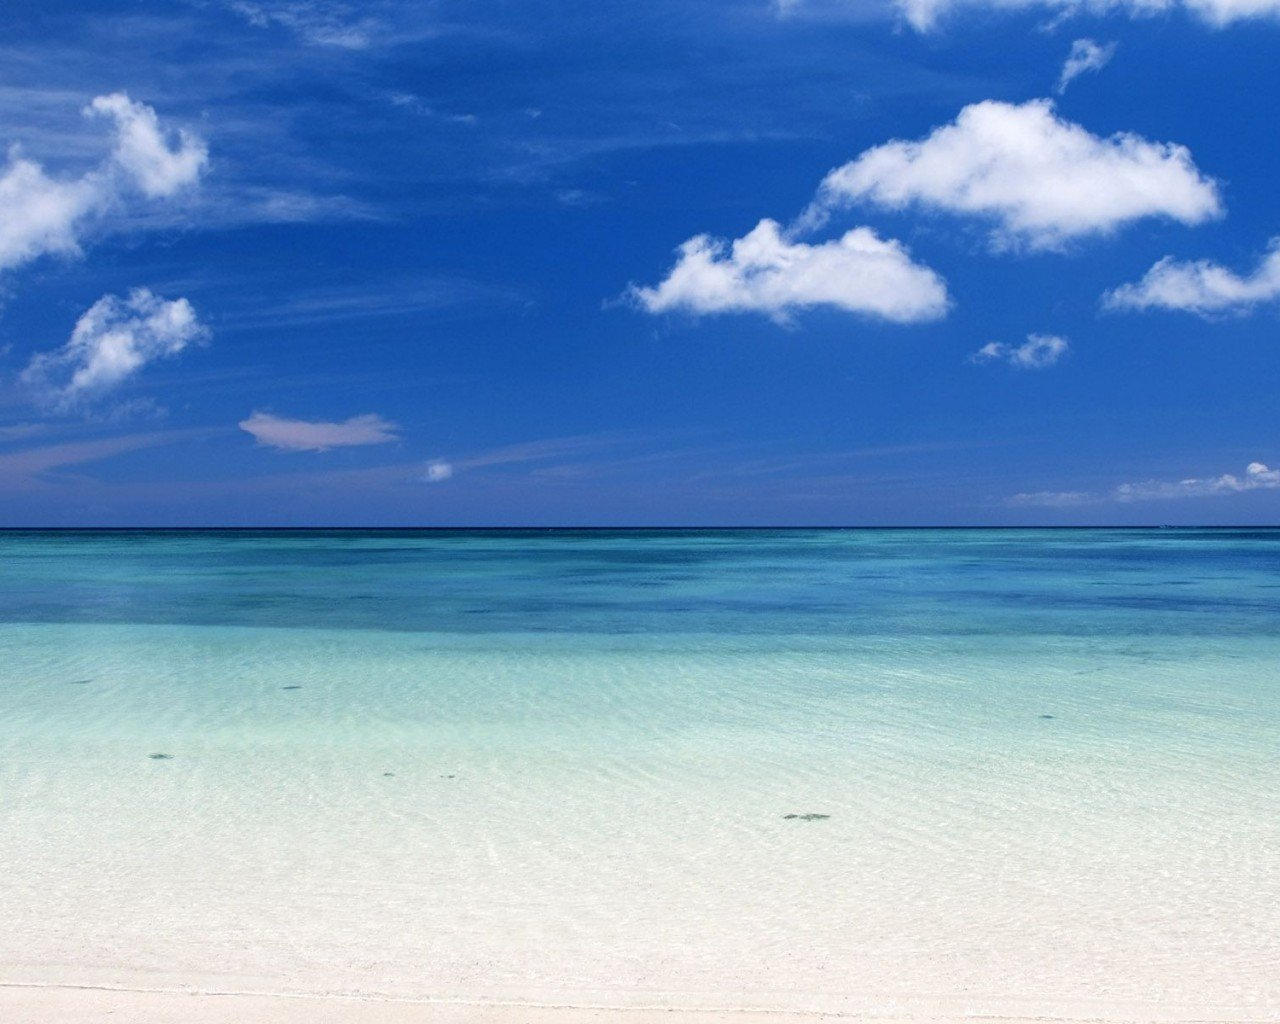 Caribbean Beach Scenes: High Resolution Beach Scene Wallpaper